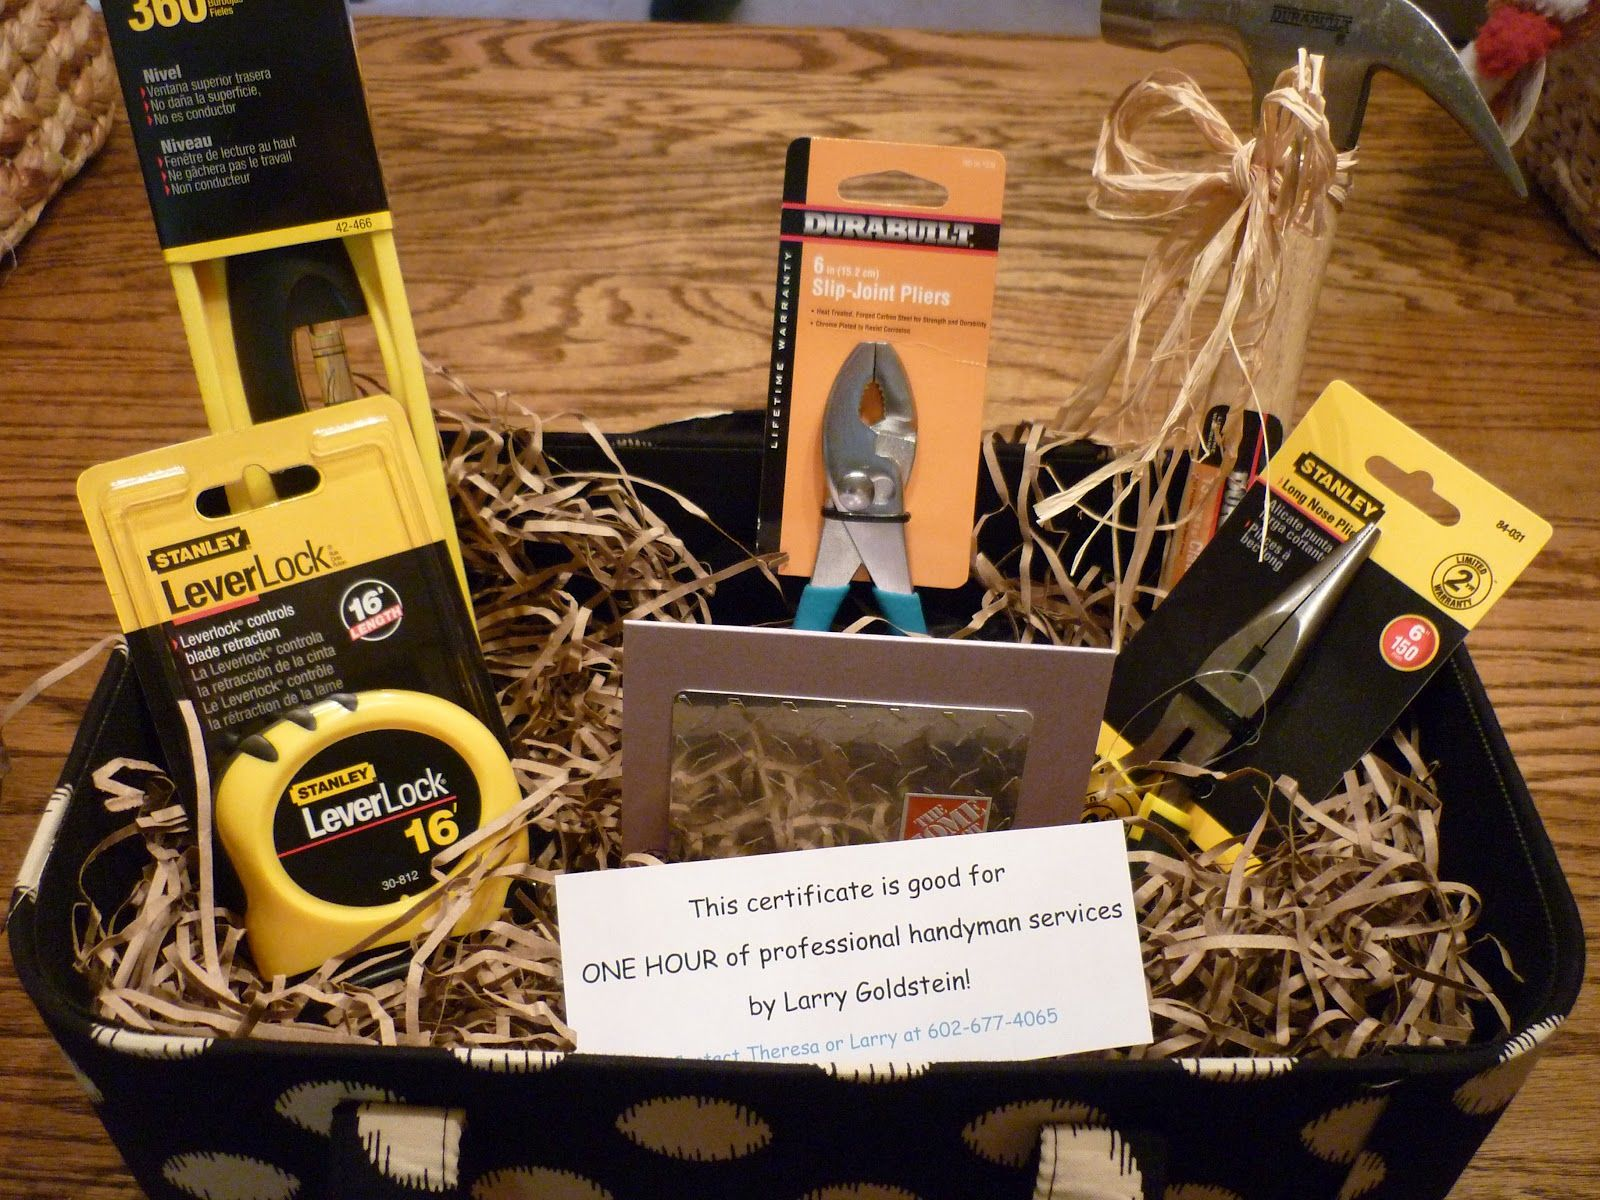 raffle prizes for men honey do basket includes 50 gift card to home depot and one